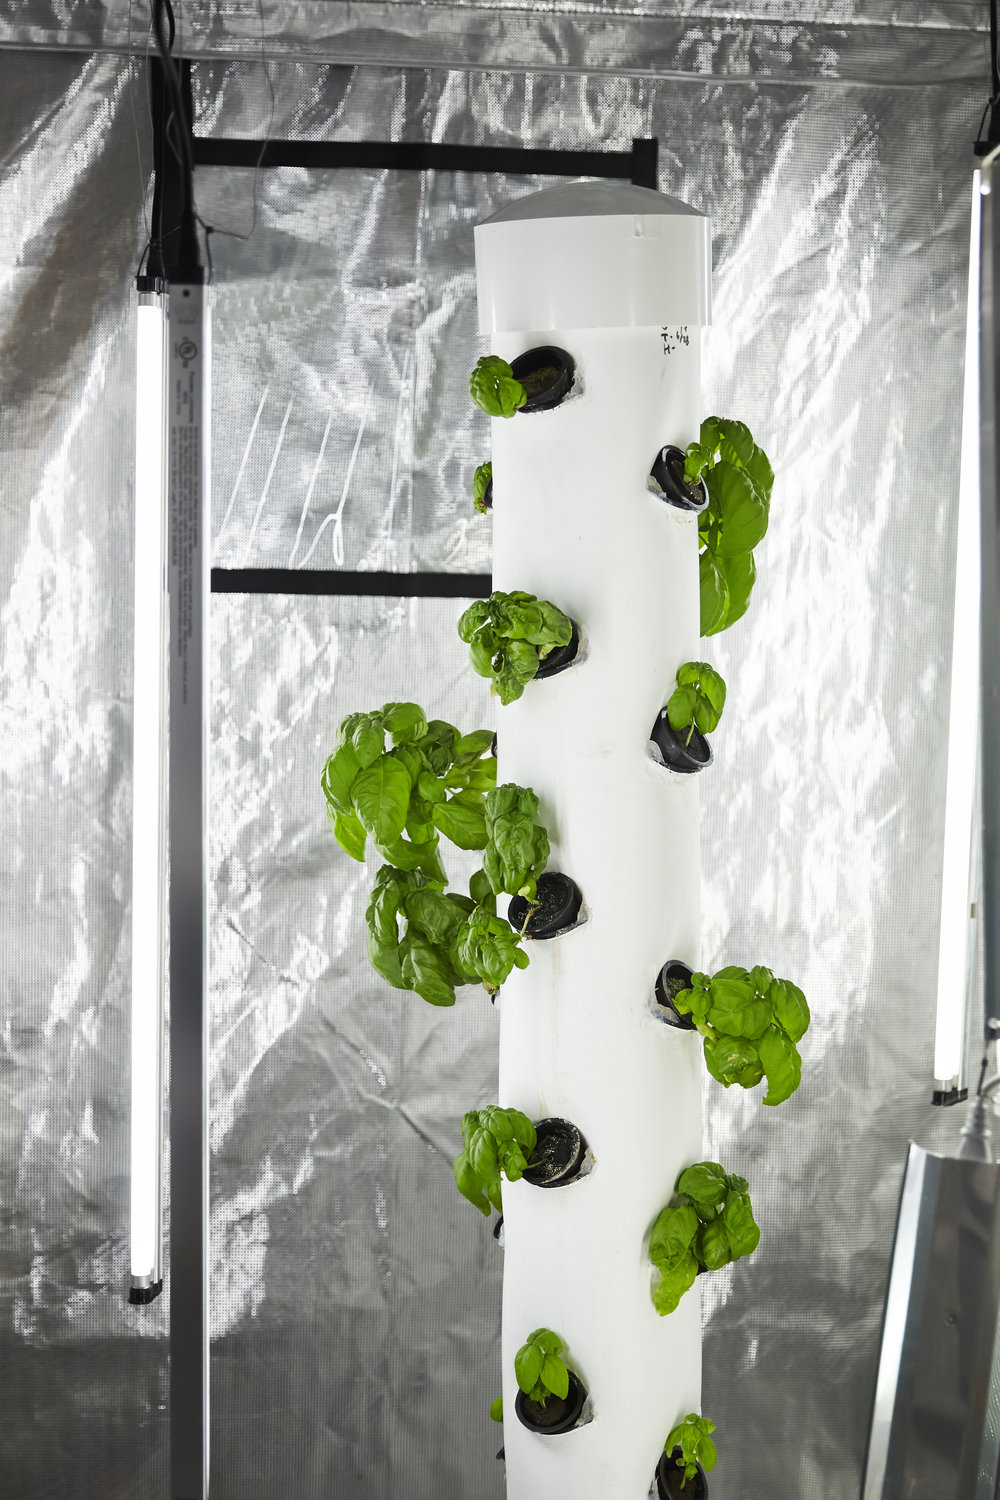 Prototype your own growing systems.